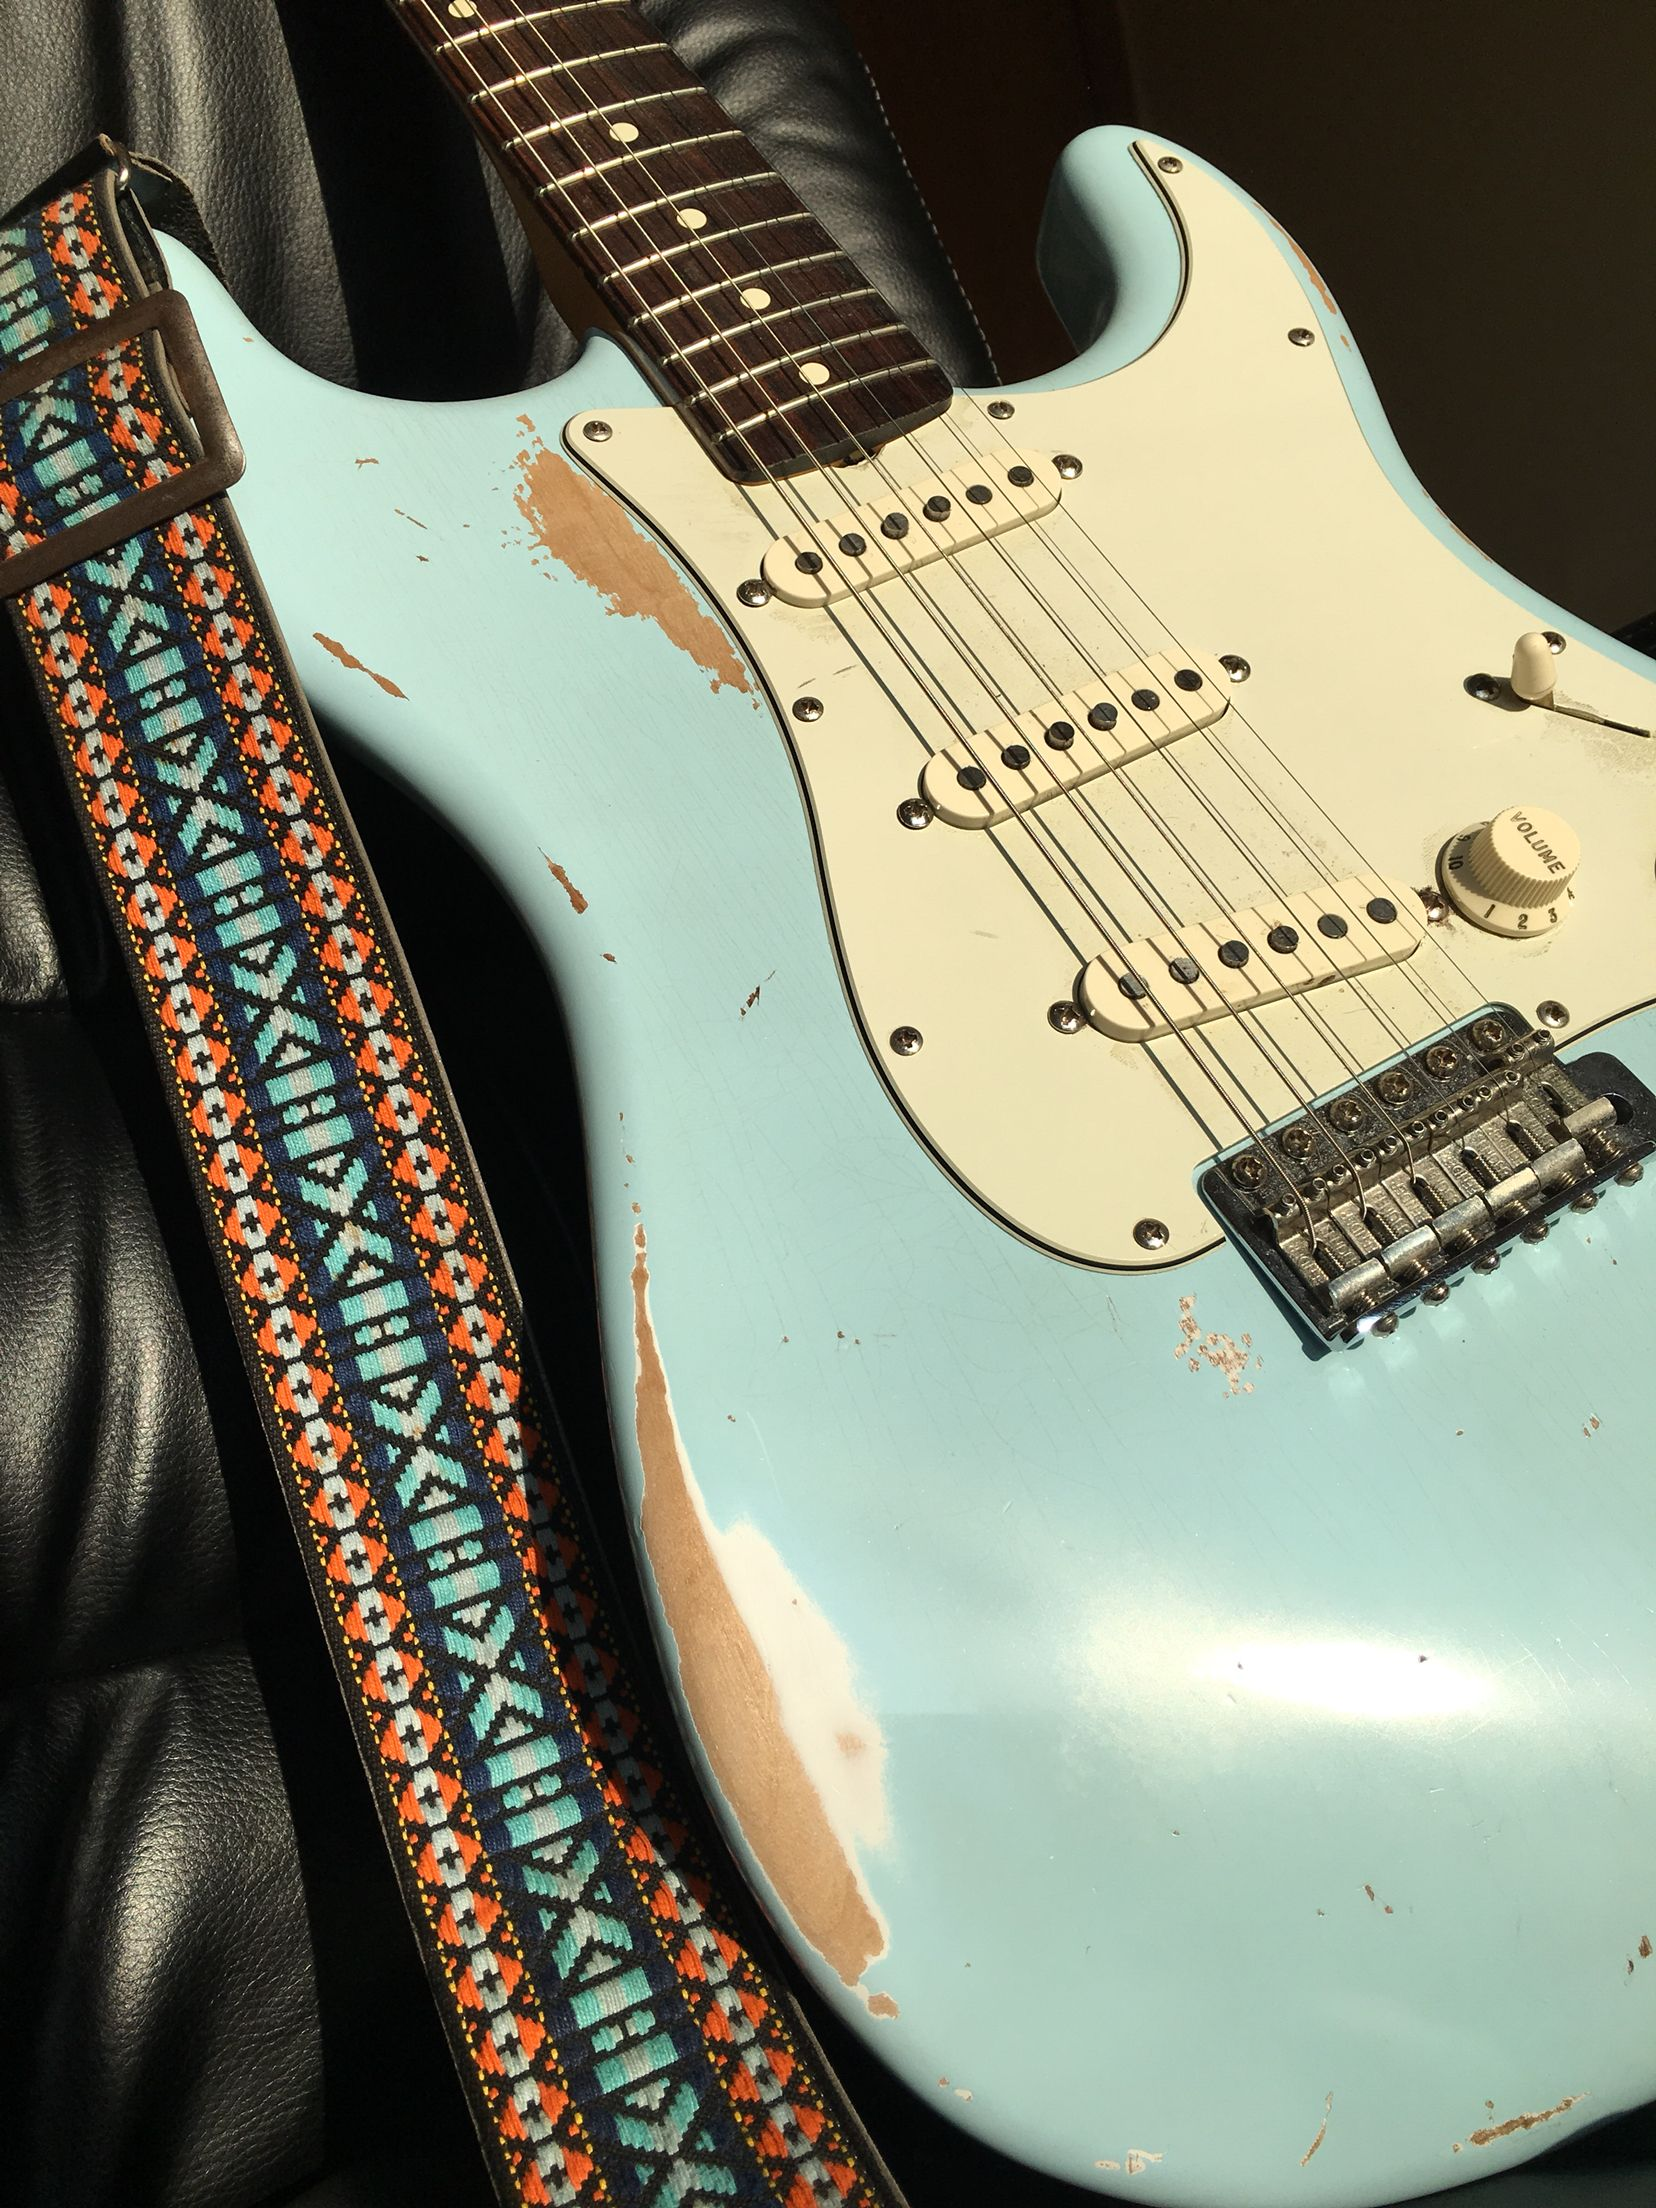 Generous Ibanez Rg Wiring Thin Ibanez Wiring Square Dimarzio Switch Security Diagram Young One Humbucker One Volume BrownSolar Panel Wiring TRS. 1962 Fender Sonic Blue Strat. Stratocaster. Vintage. Guitar ..